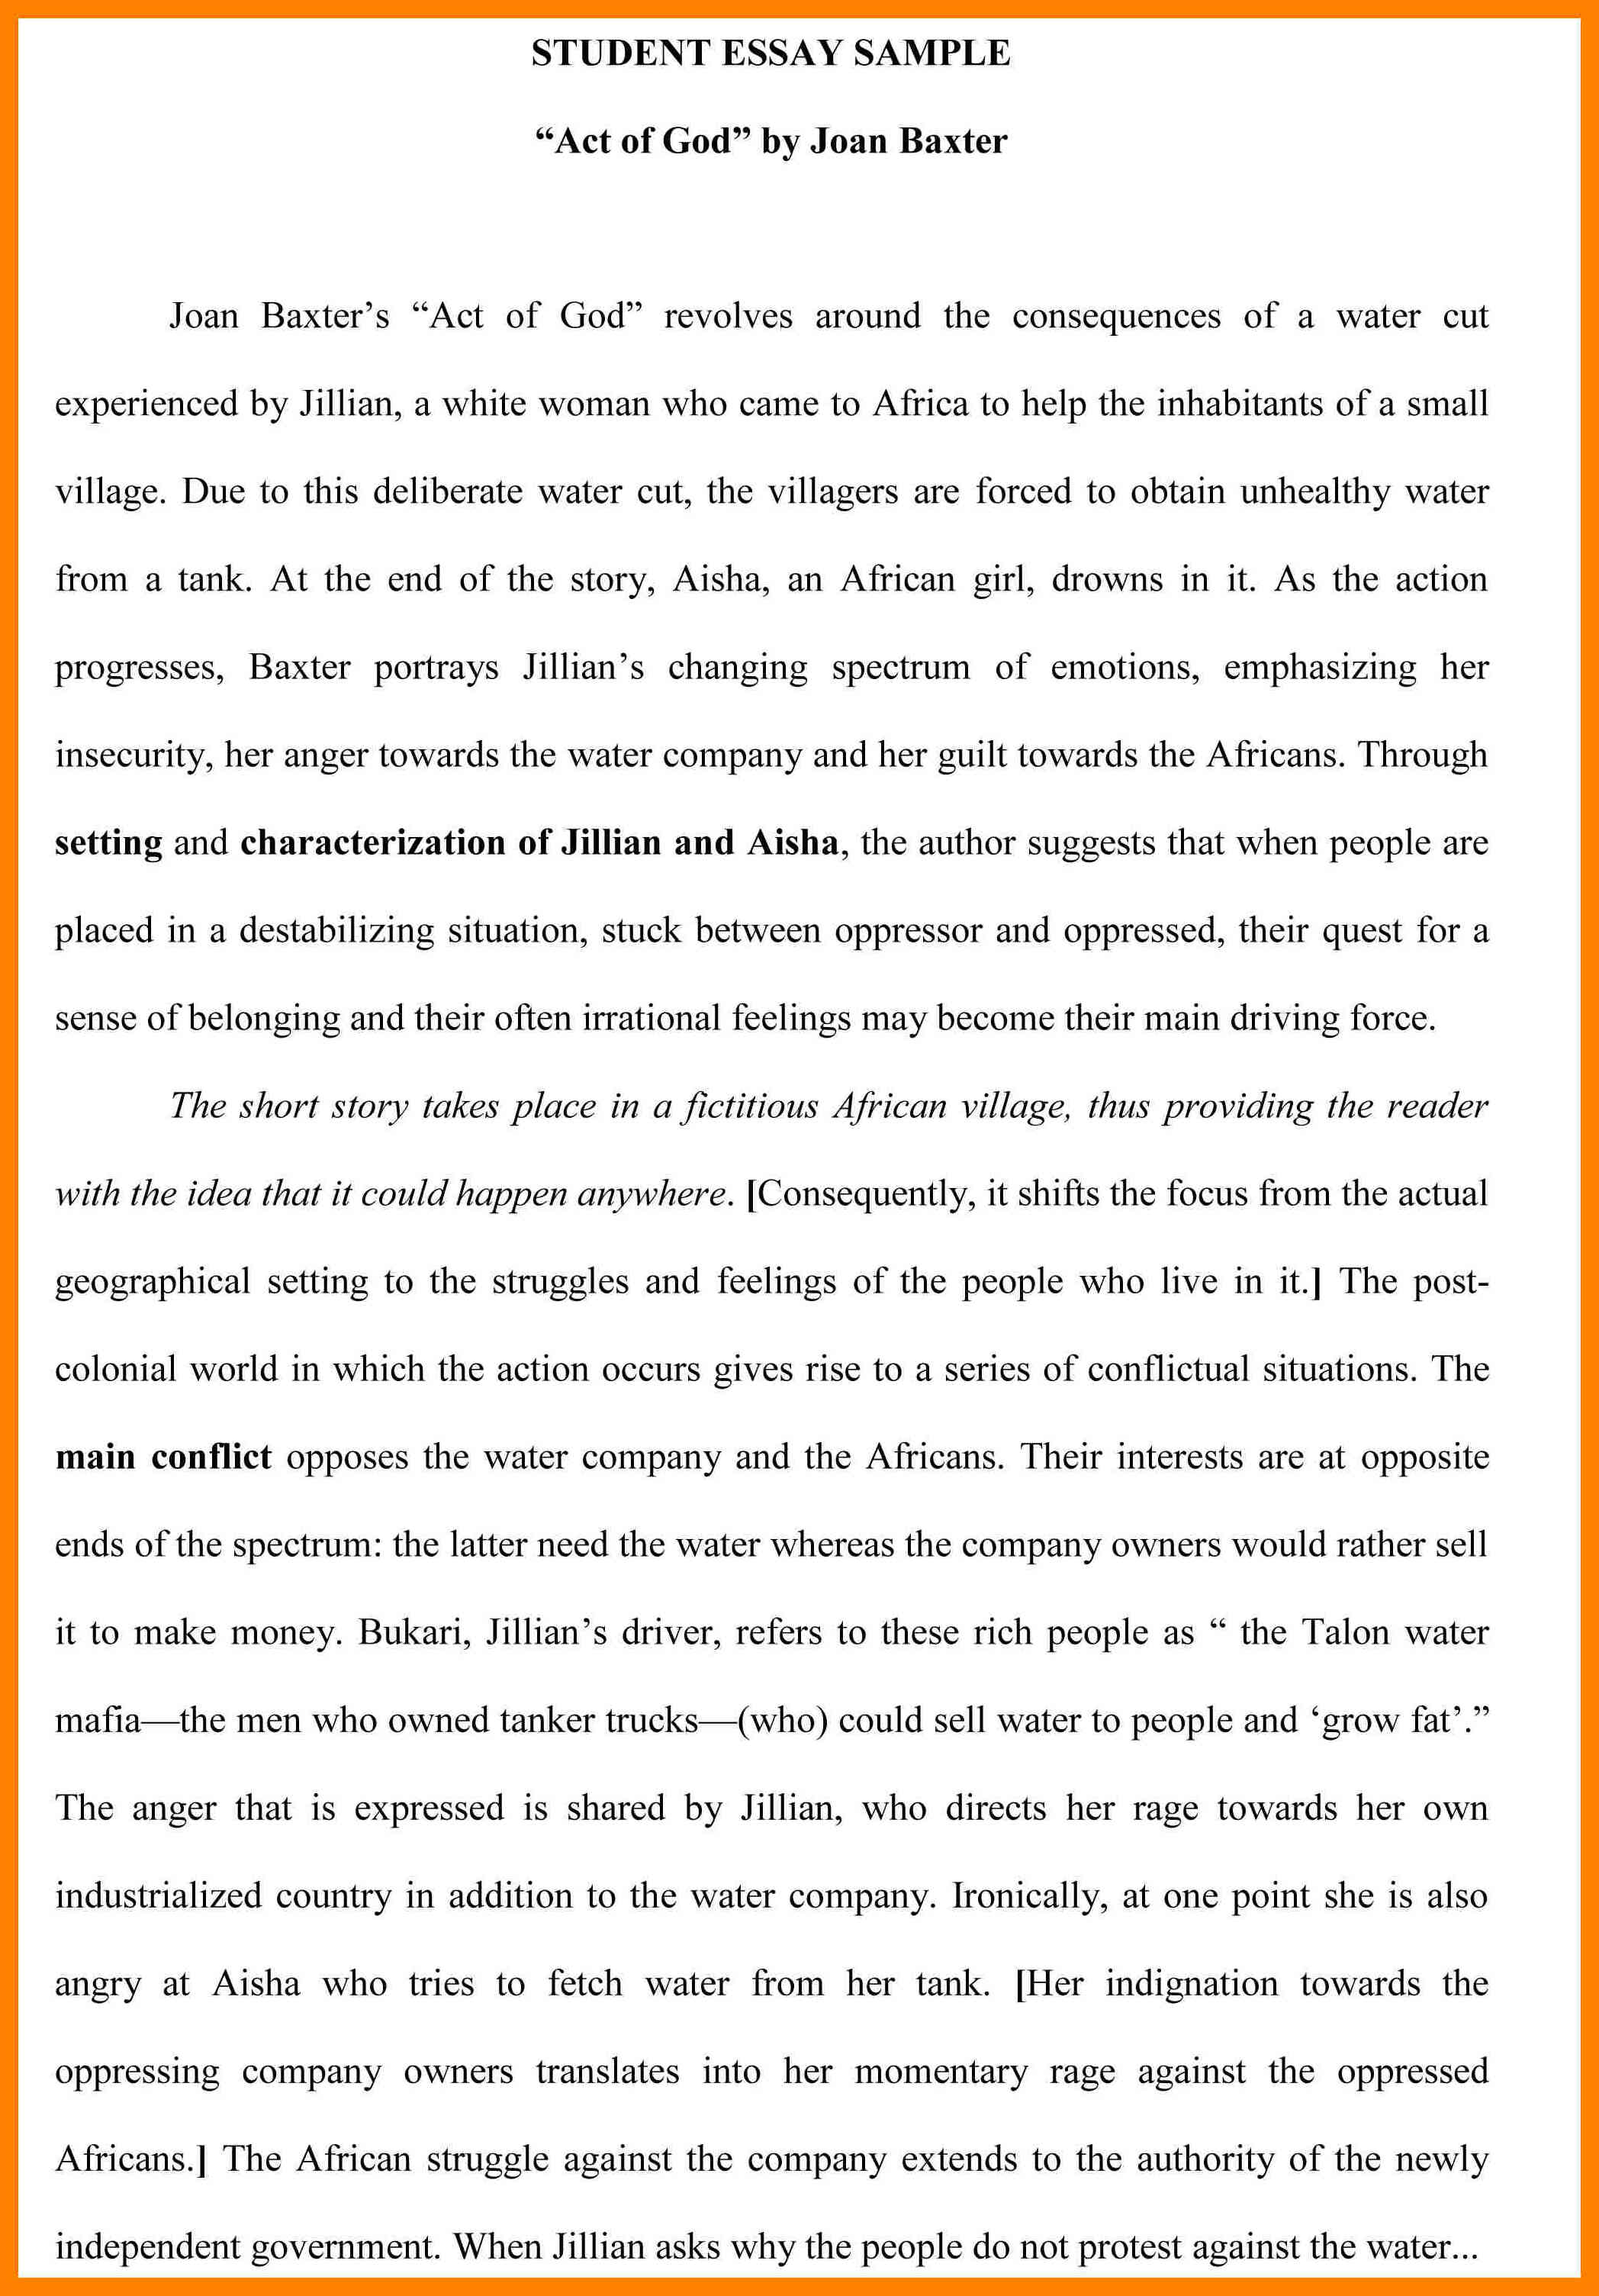 002 Sample Math Test Act Elmifermetures Com Ideas Collection Essay Awesome Of Livesto Essays Pdf New Topics Example Fearsome Examples Good Score Average Full